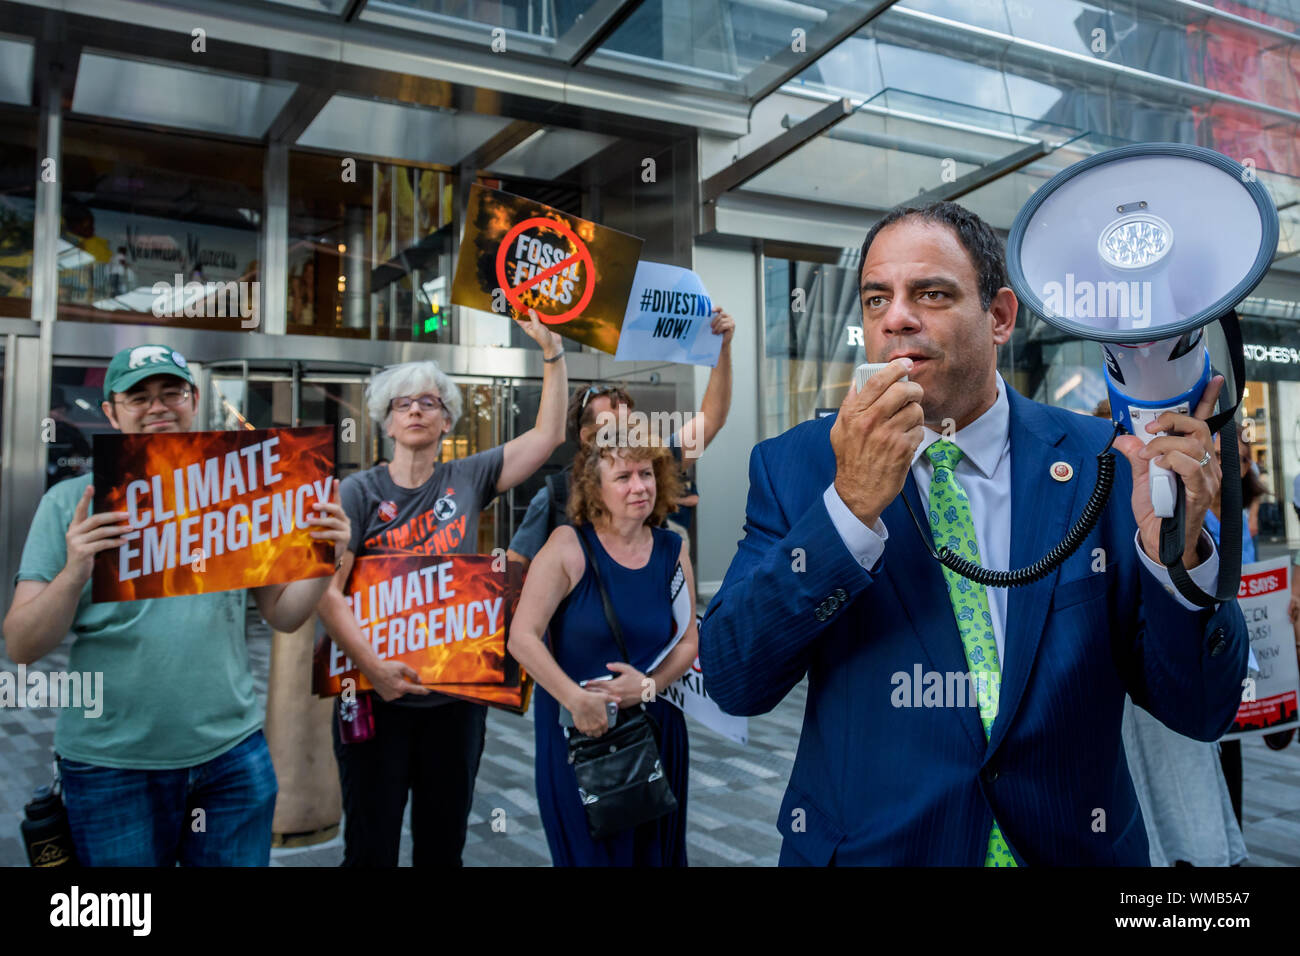 New York, USA. 4th Sep, 2019. NY City Council Member COSTA CONSTANTINIDES along with hundreds of climate activists gathered outside the CNN studios at 30 Hudson Yards where a Town Hall on Climate Policy to tell the leading Democratic Party presidential candidates that it's time for them all to commit to the boldest and fastest climate actions now. Credit: Erik McGregor/ZUMA Wire/Alamy Live News Stock Photo